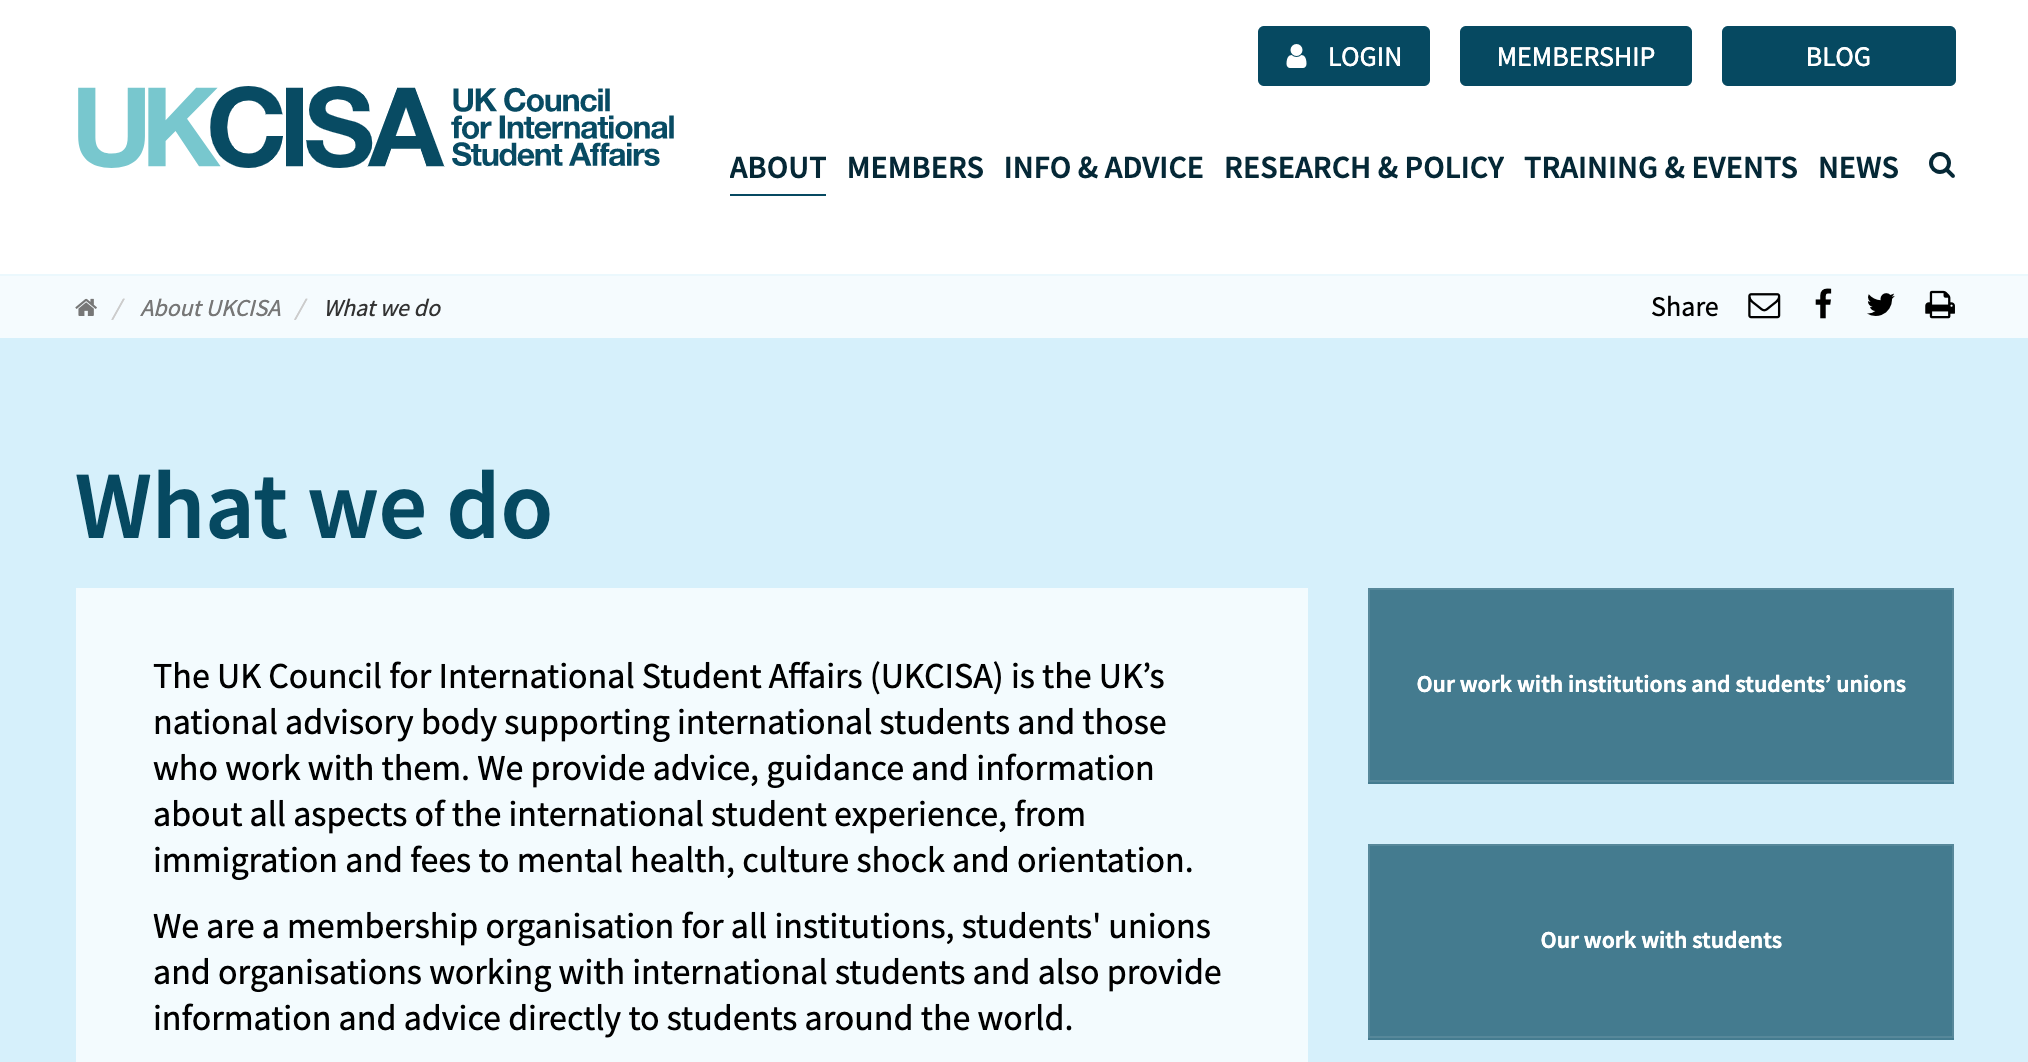 Screenshot of UK Council for International Student Affairs website, launch page about organisation.